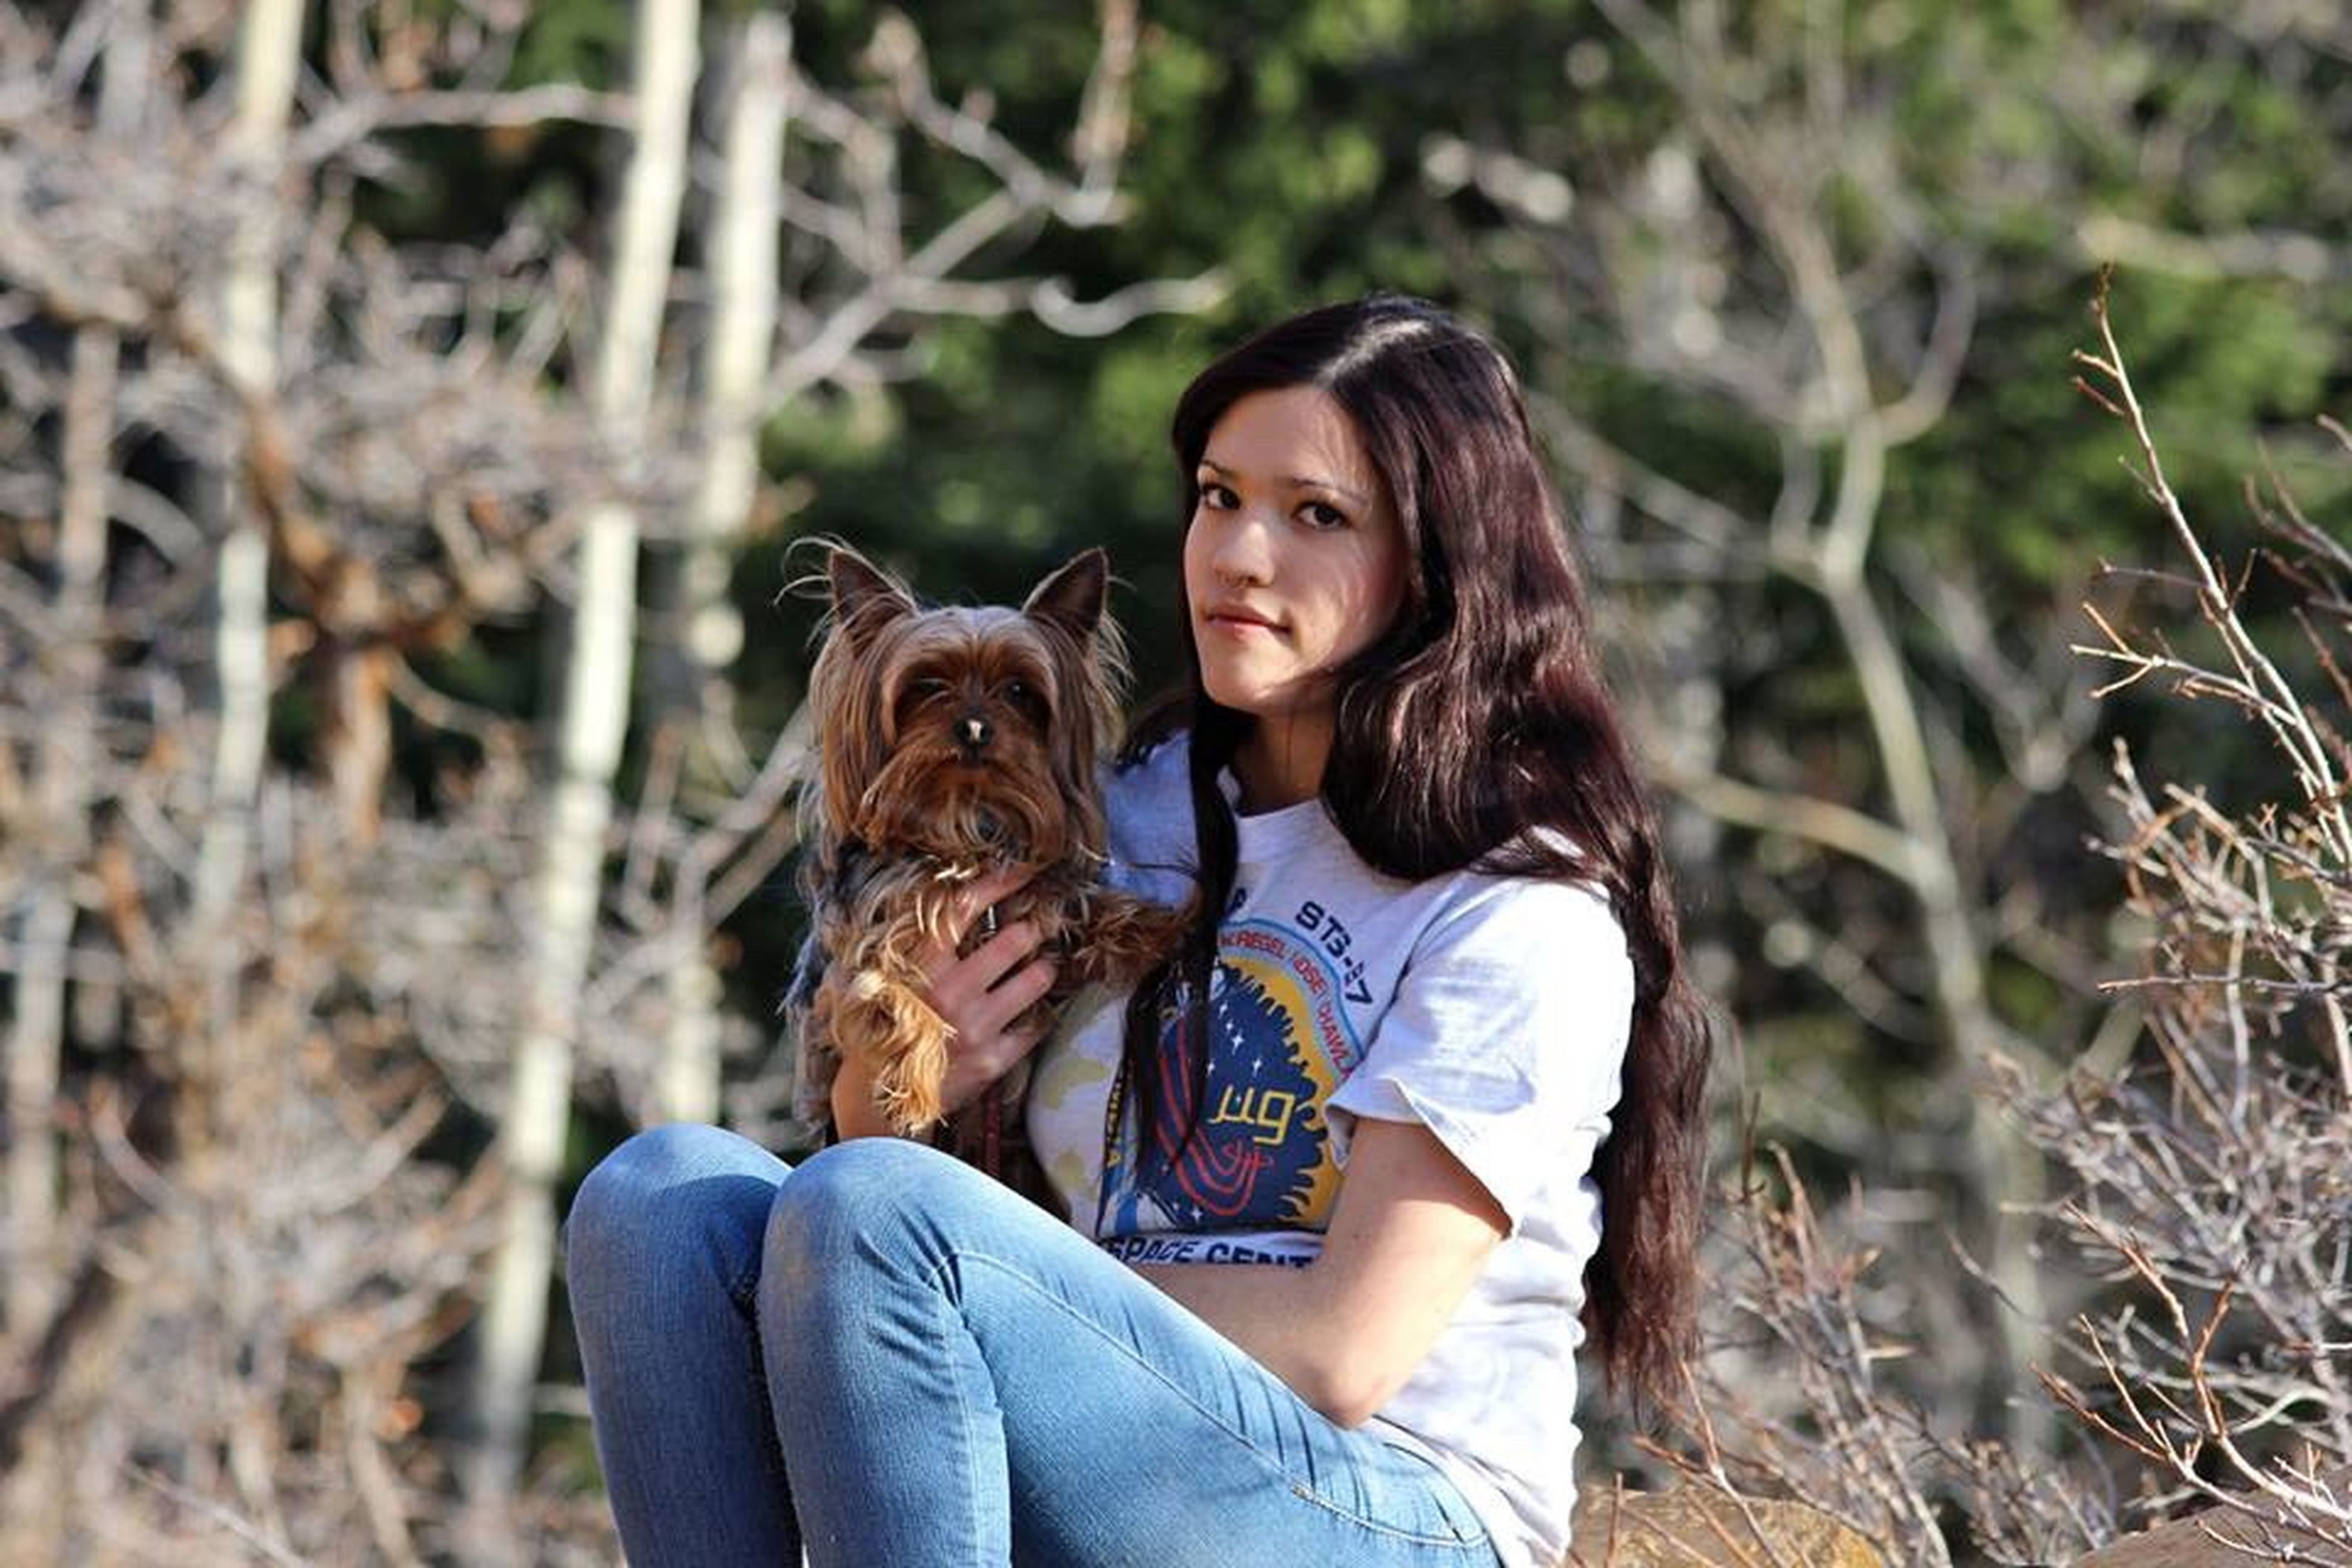 dog, pets, casual clothing, domestic animals, one animal, sitting, mammal, leisure activity, one person, real people, lifestyles, love, embracing, outdoors, bonding, young adult, friendship, young women, nature, day, women, smiling, portrait, adult, people, adults only